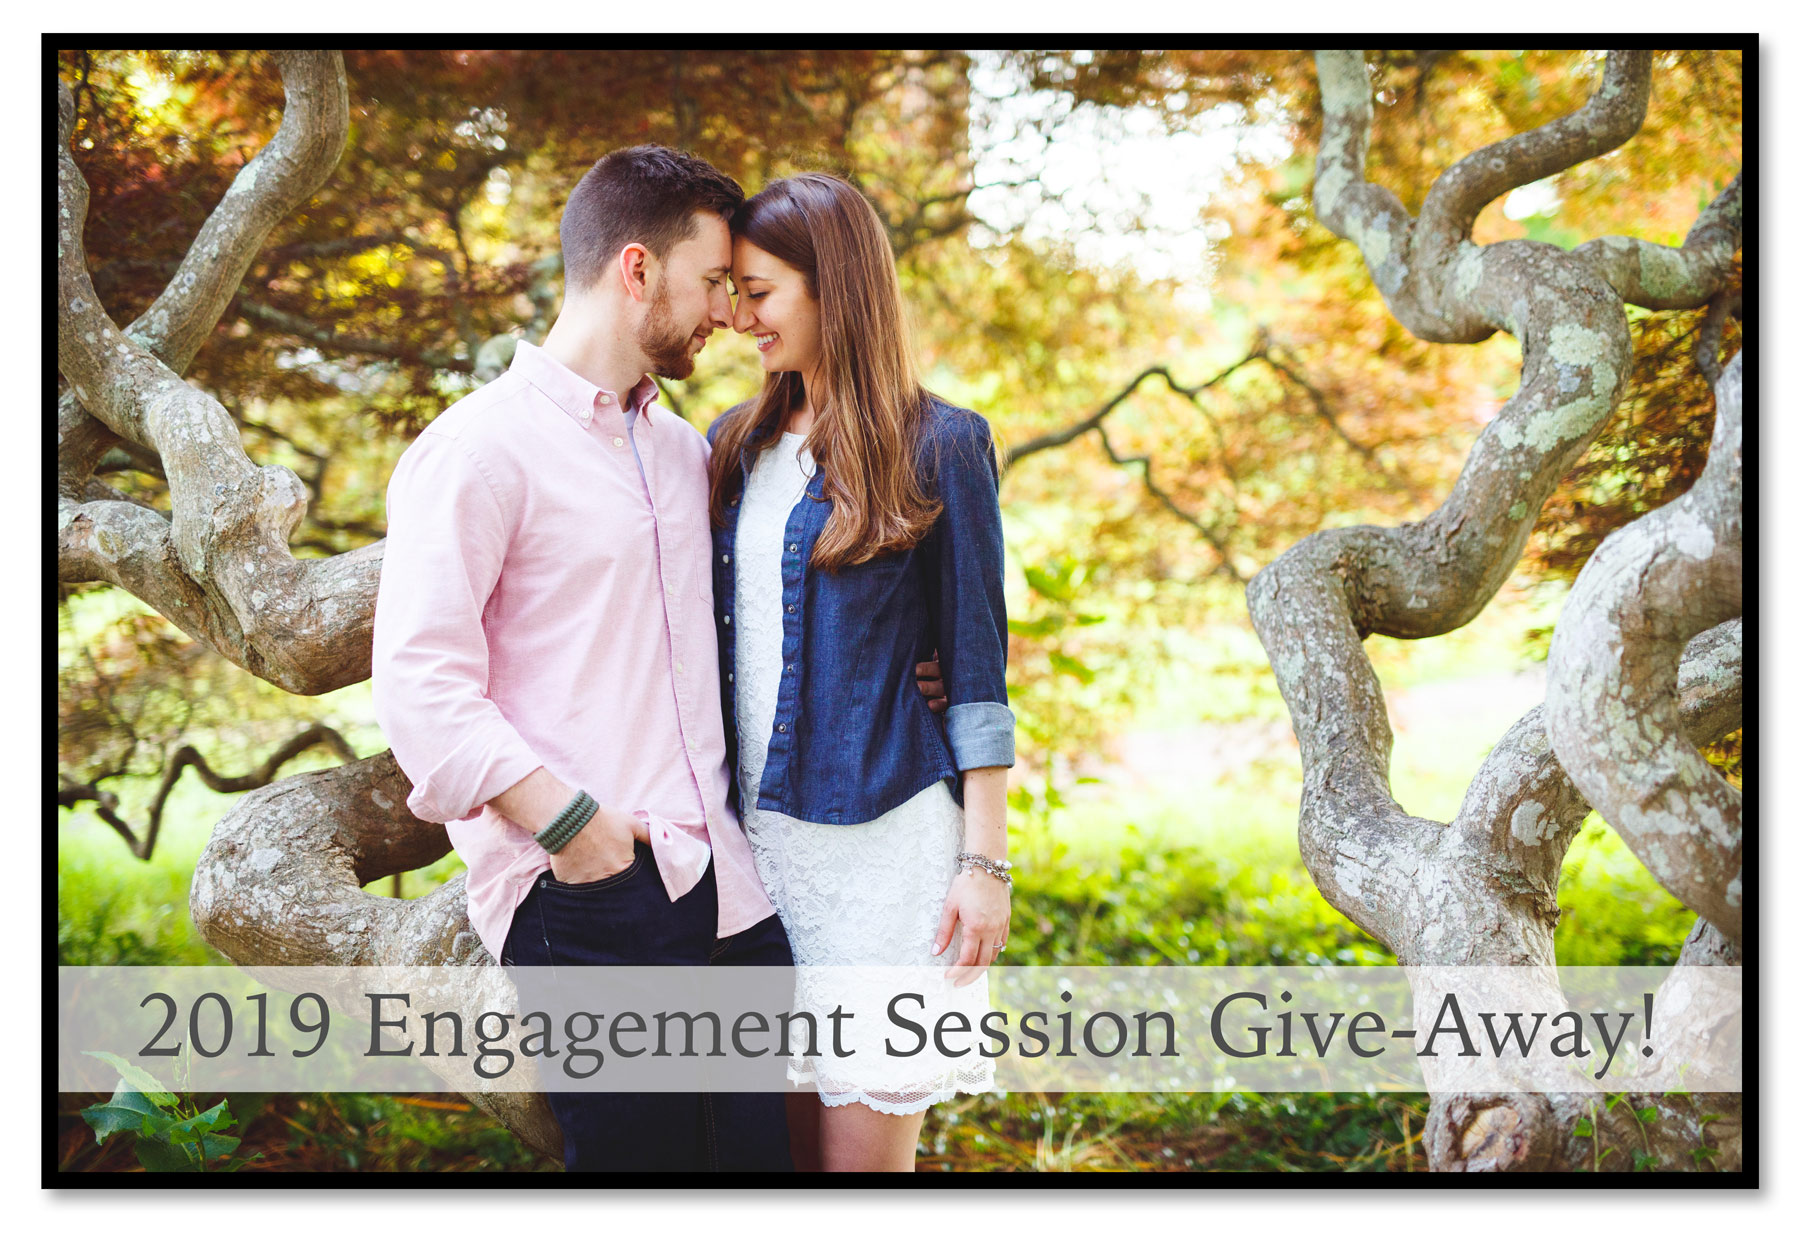 2019-Engagment-Give-Away.jpg